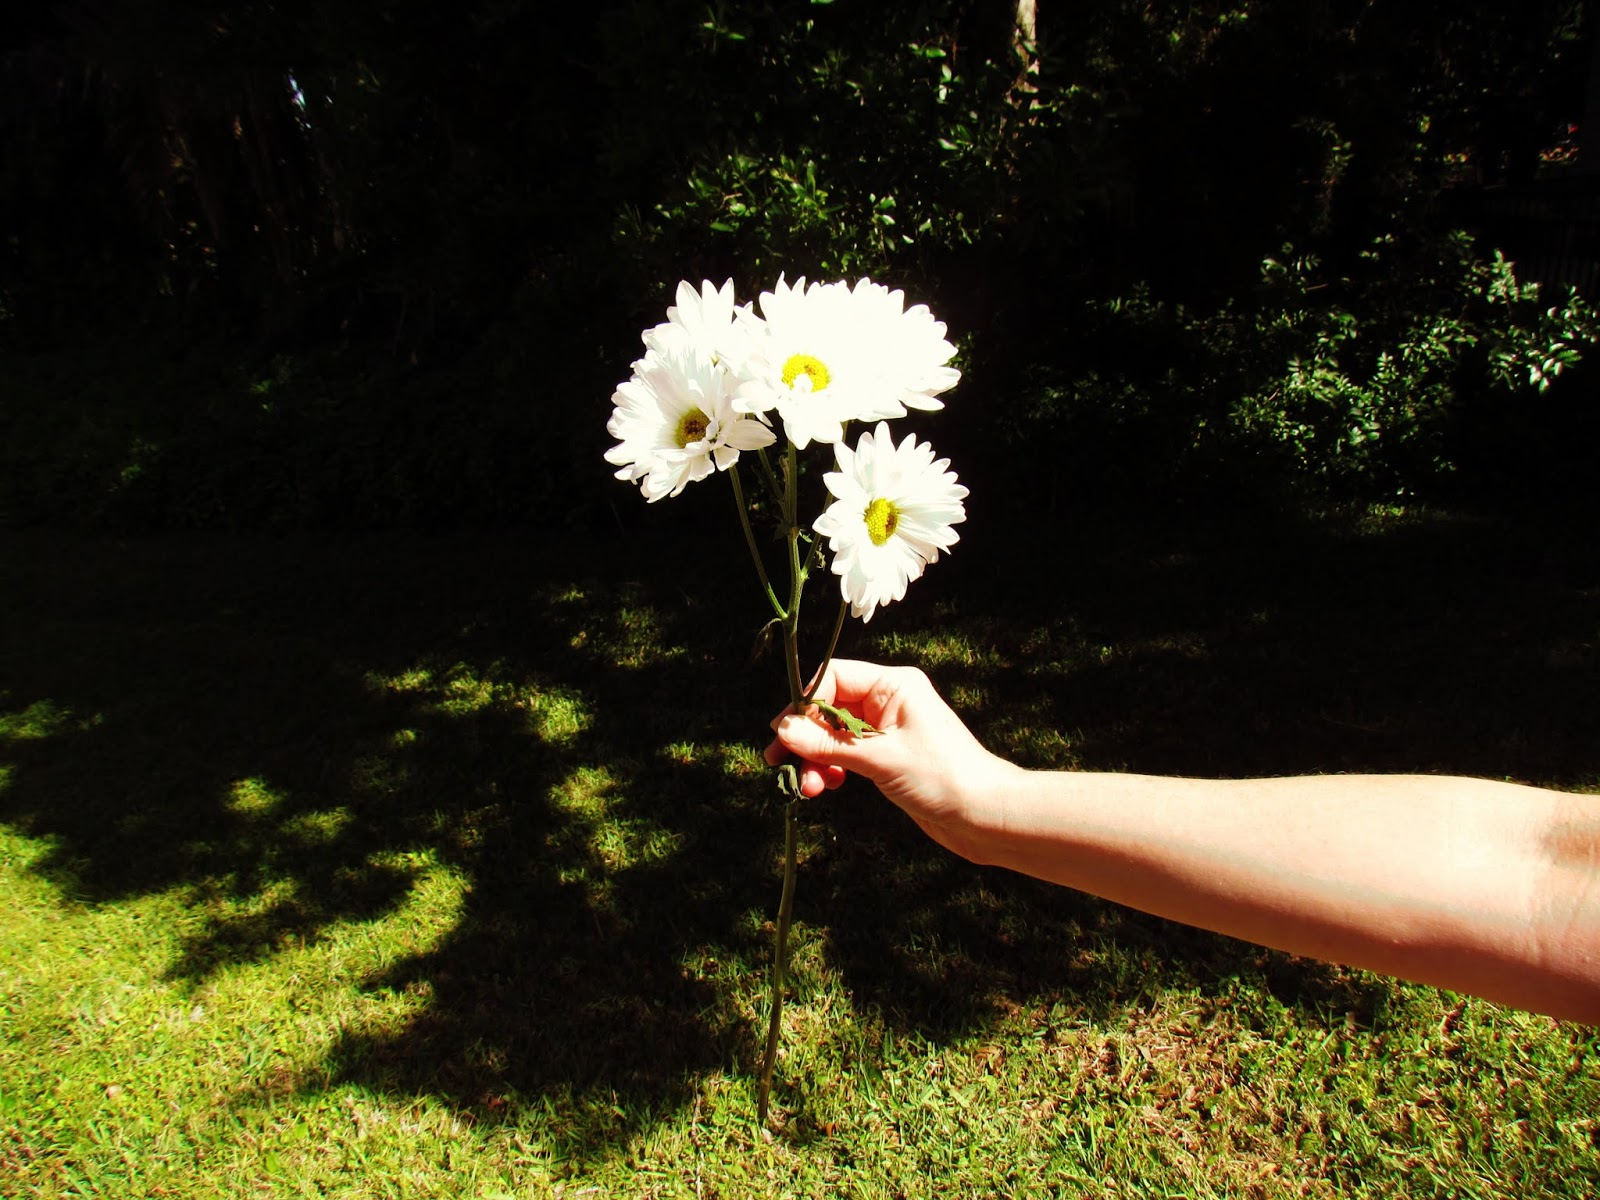 A Woman Holding a Tiny Bouquet of Wildflowers in the Backyard on Green Grass With Tall Oak Trees